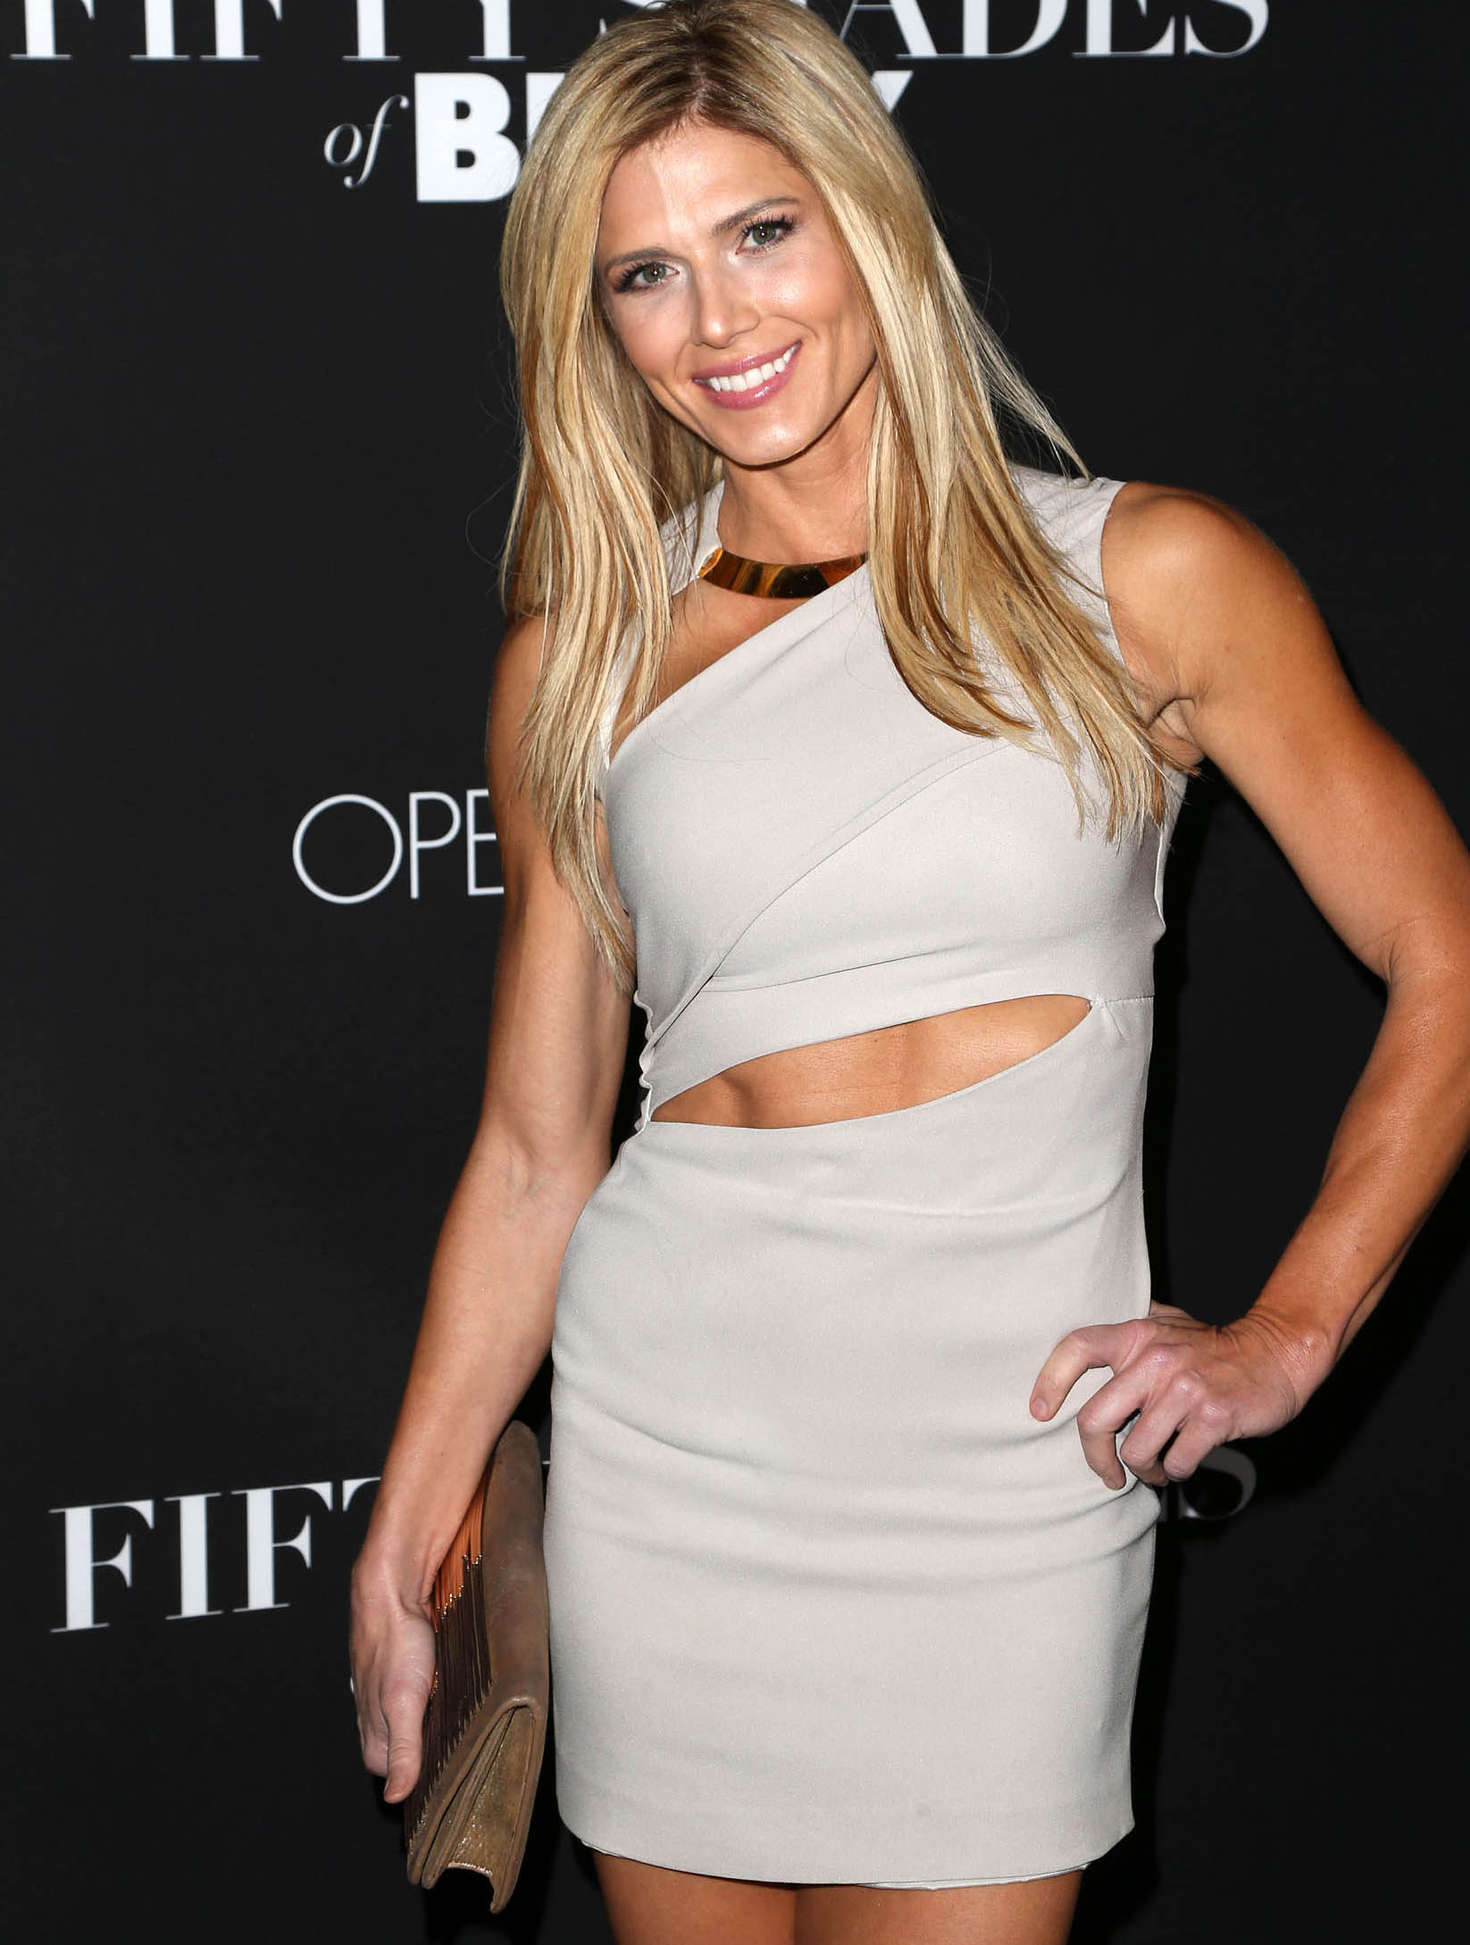 Torrie Wilson Fifty Shades of Black Premiere in Los Angeles